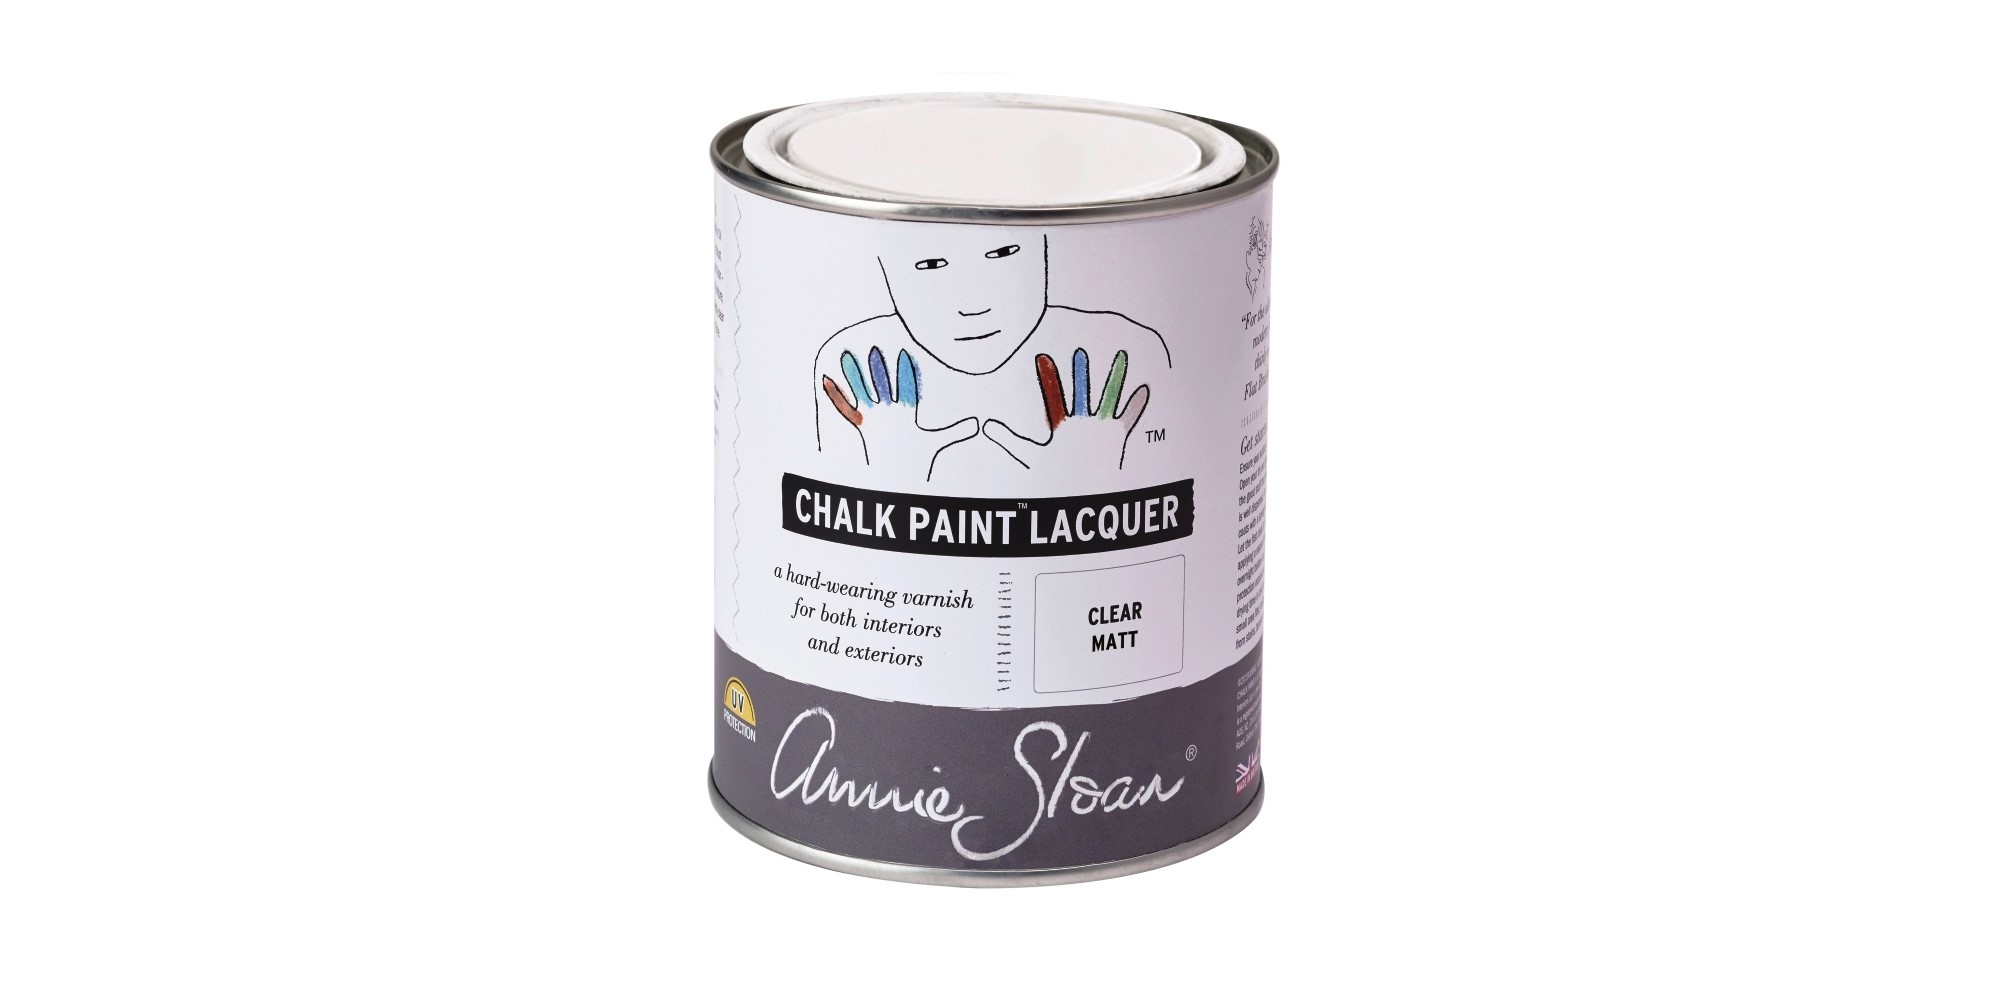 Chalk Paint Lacquer From Annie Sloan For Sealing Painting